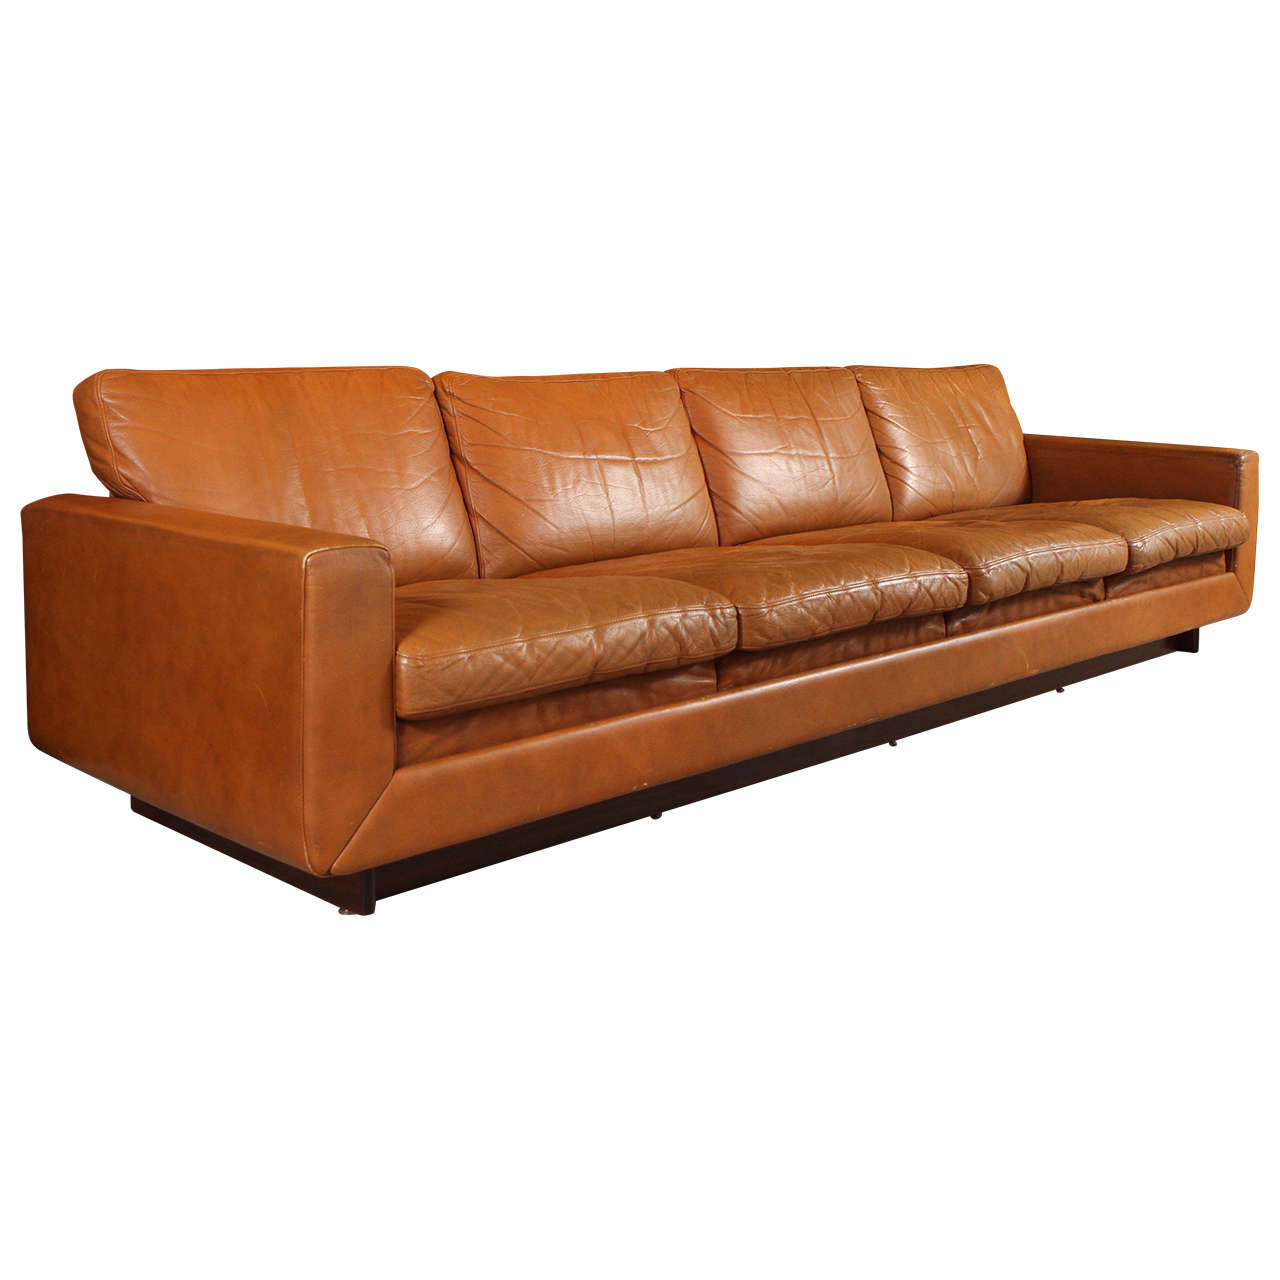 american leather swing chair cover hire slough massive sofa at 1stdibs